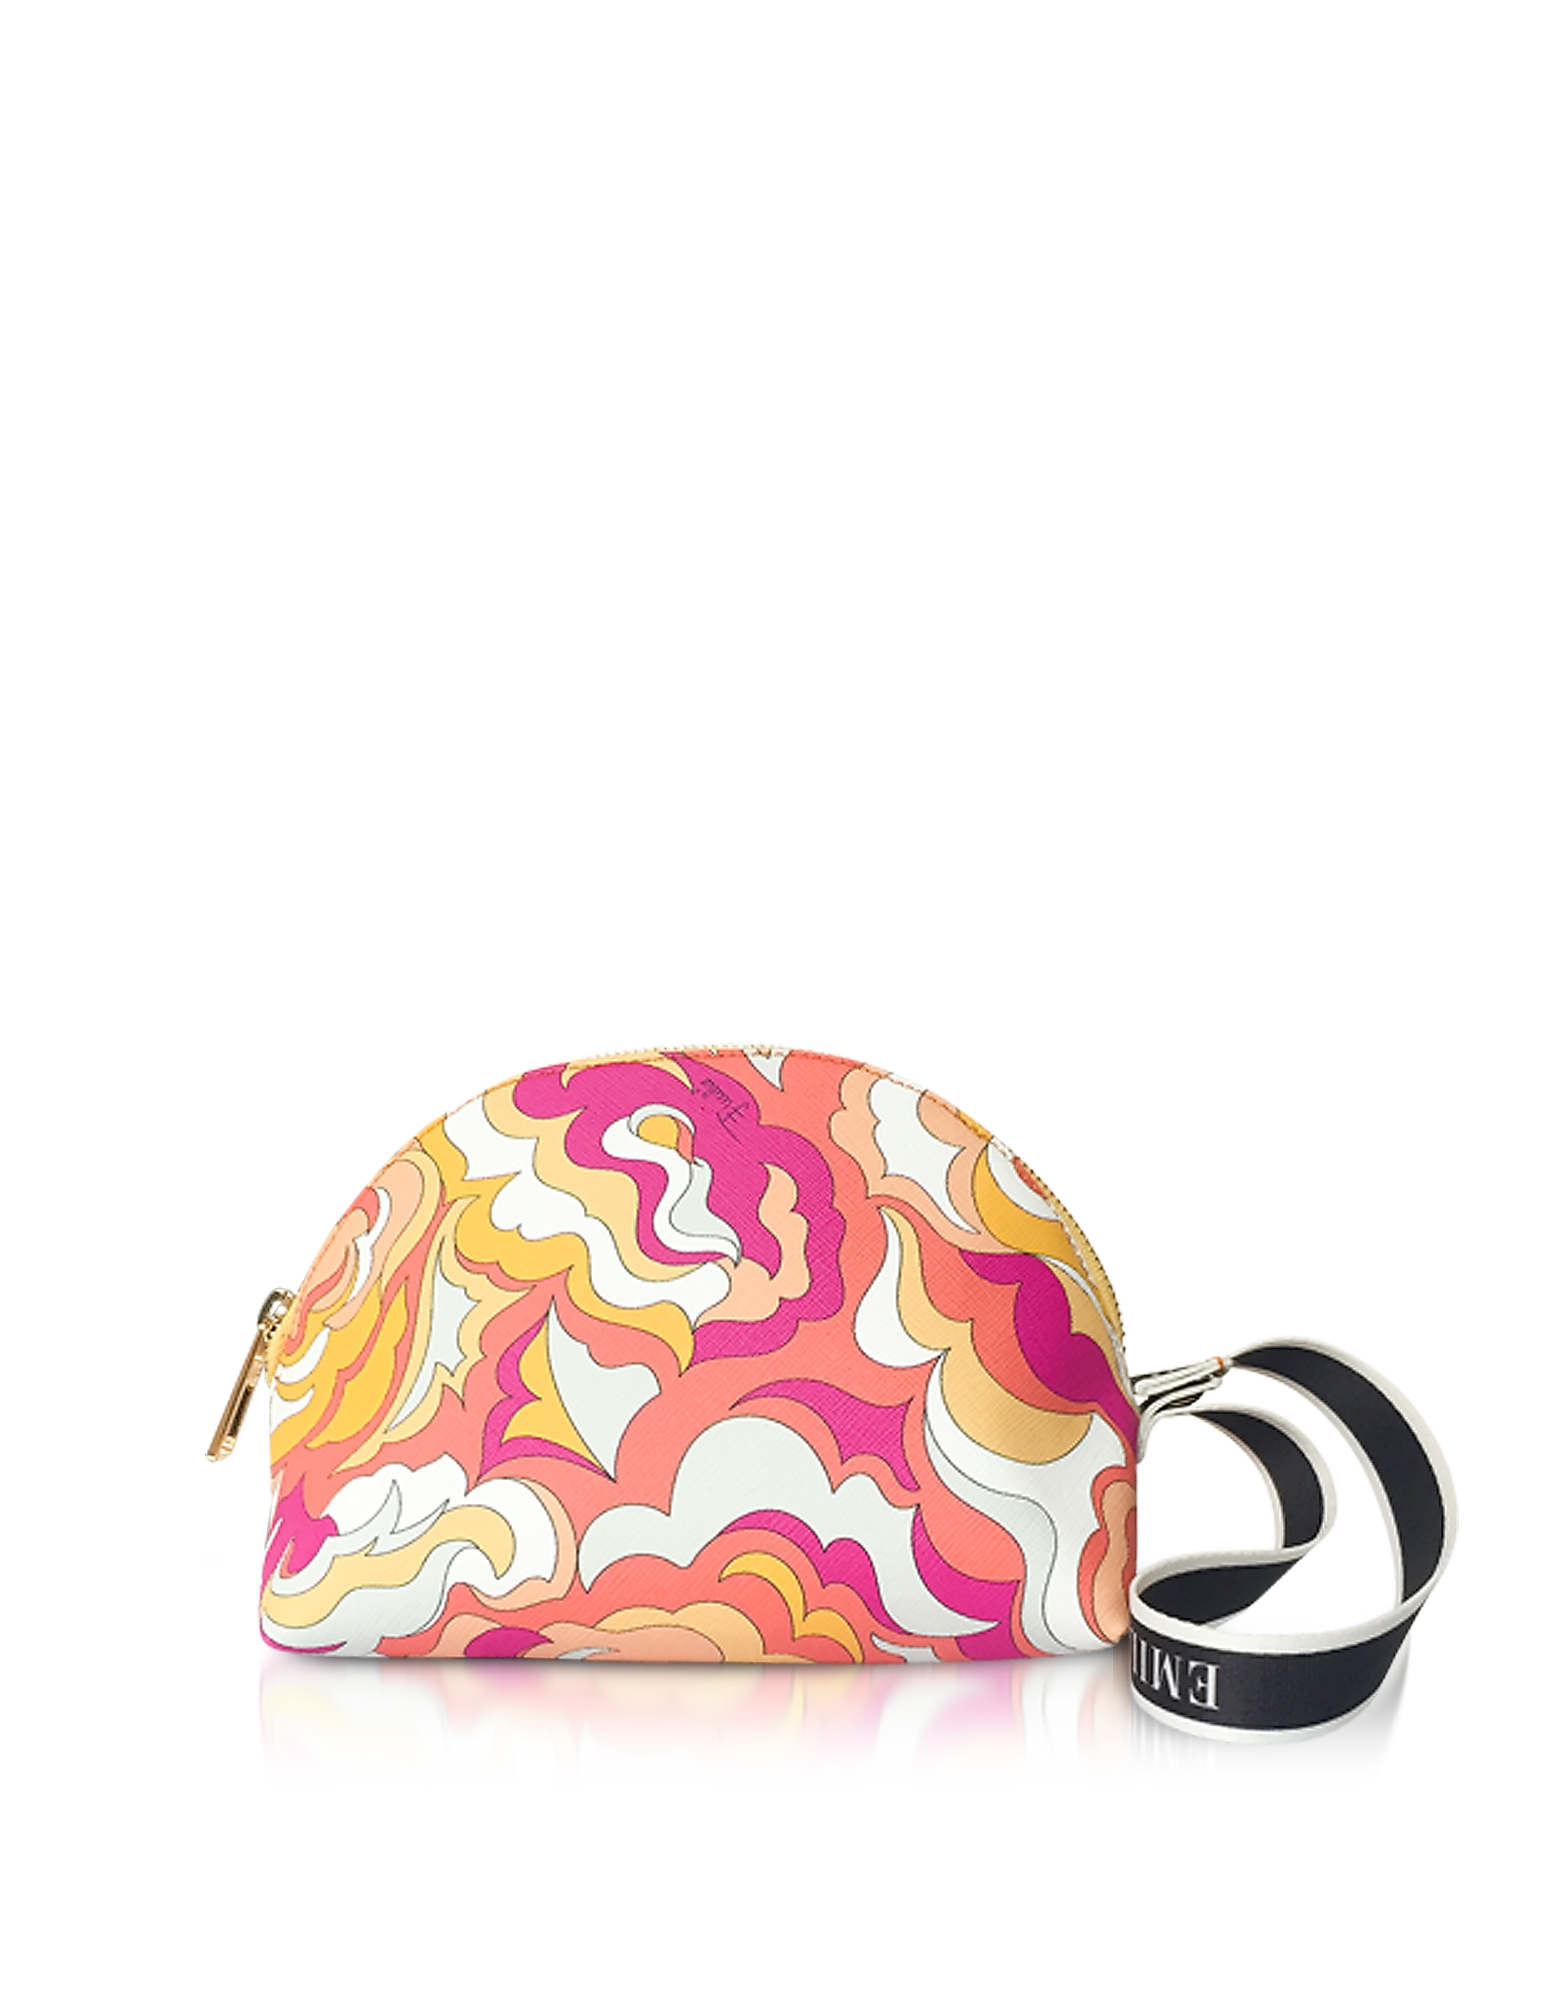 Image of Emilio Pucci Designer Handbags, Coral and Sand Coated Canvas Cosmetic Case/Pouch